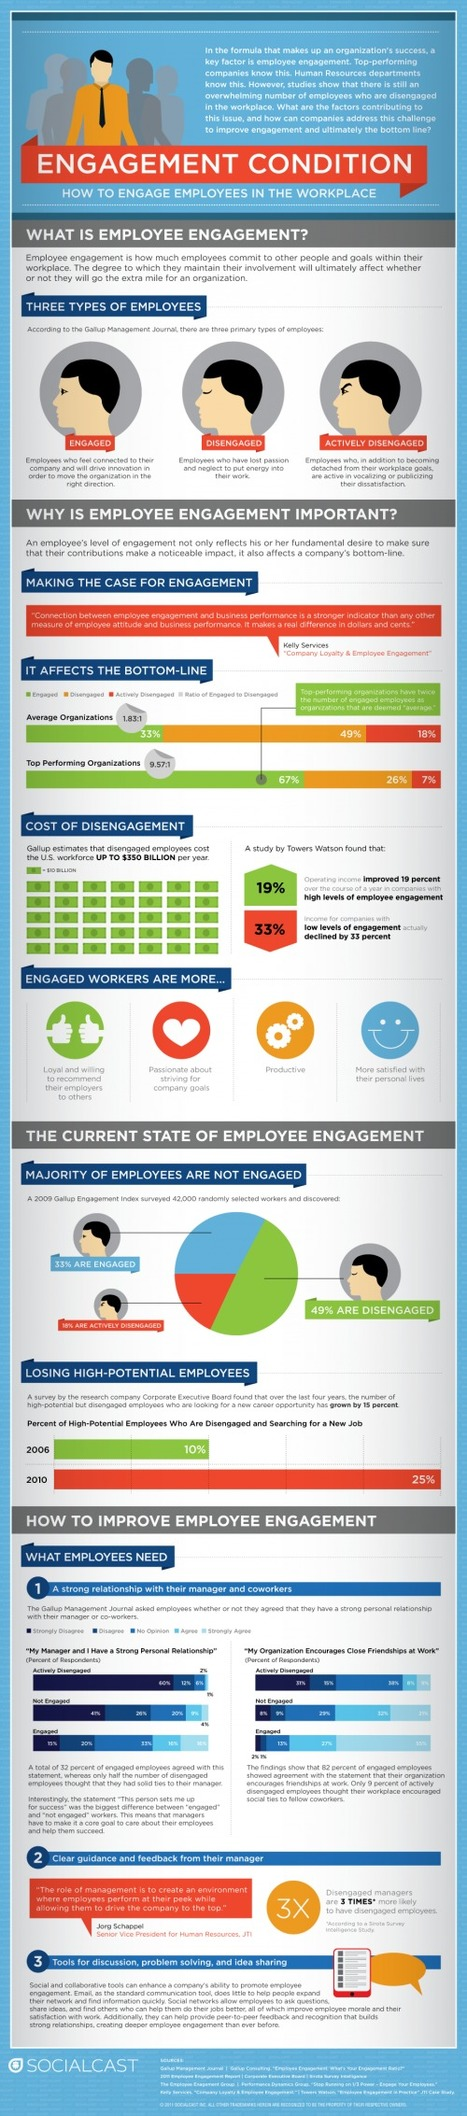 How to Engage Employees in the Workplace, SocialCast wmware | Employer Branding News | Scoop.it